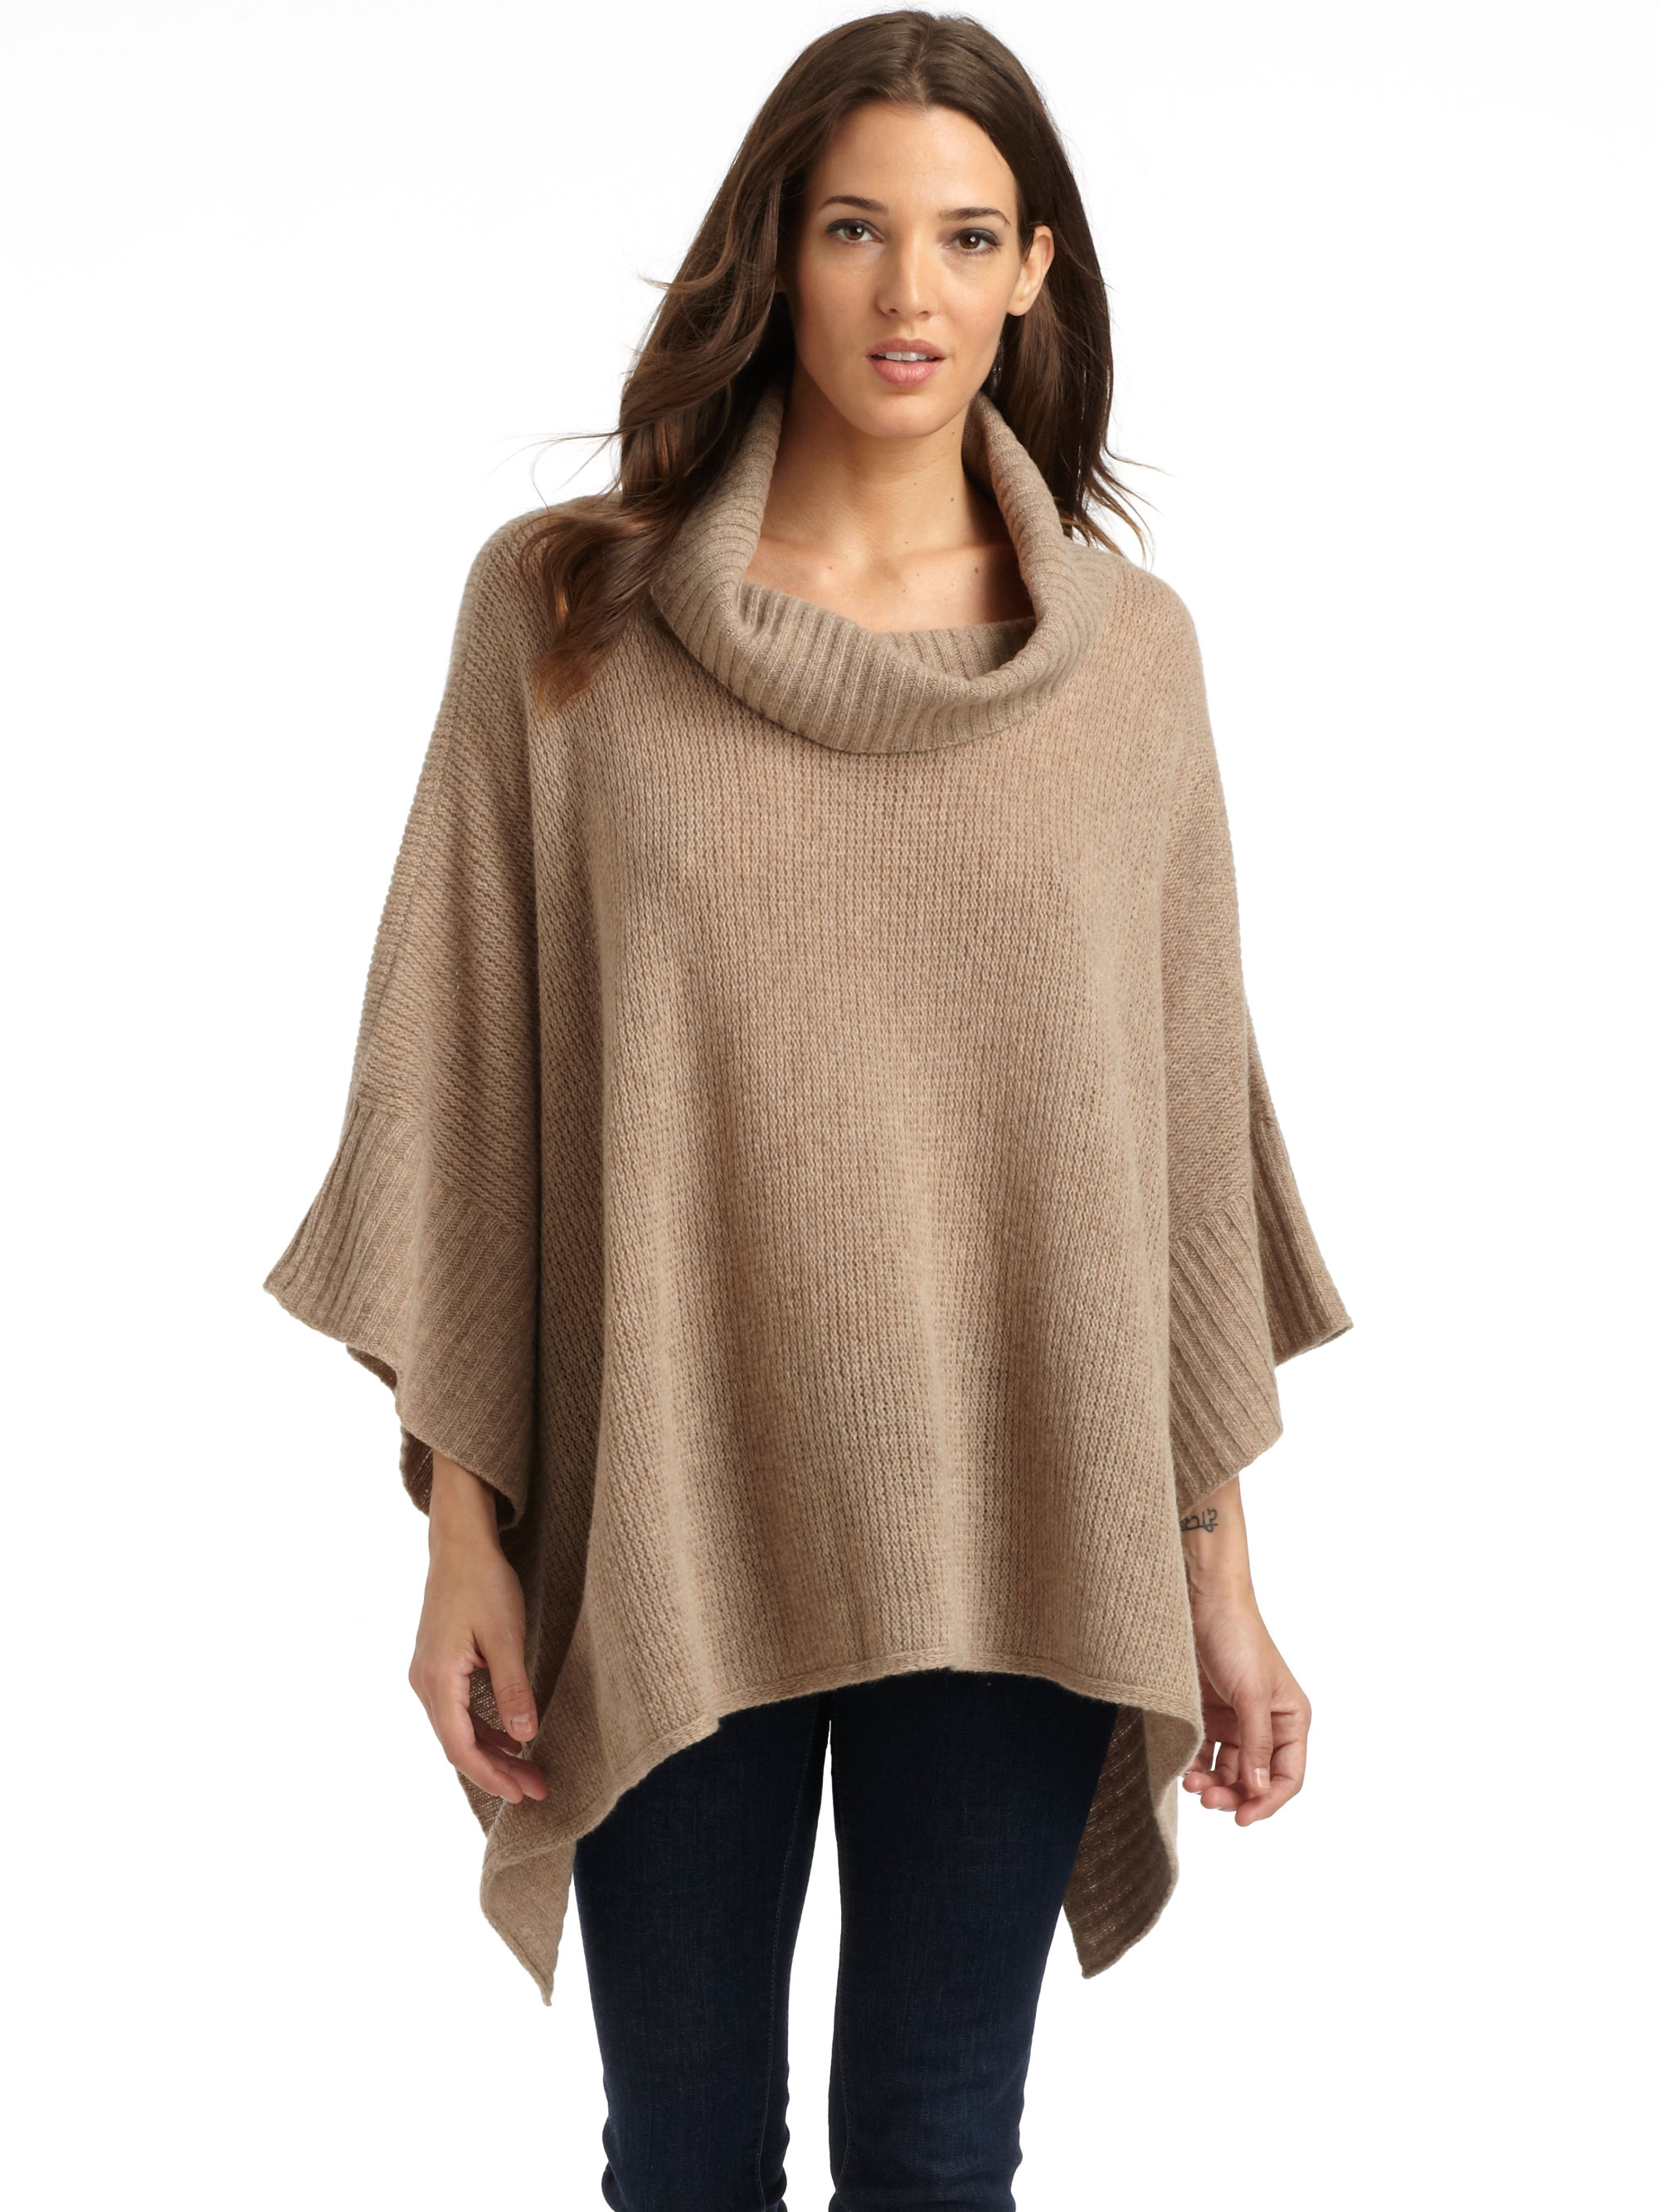 poncho sweater gallery eractls